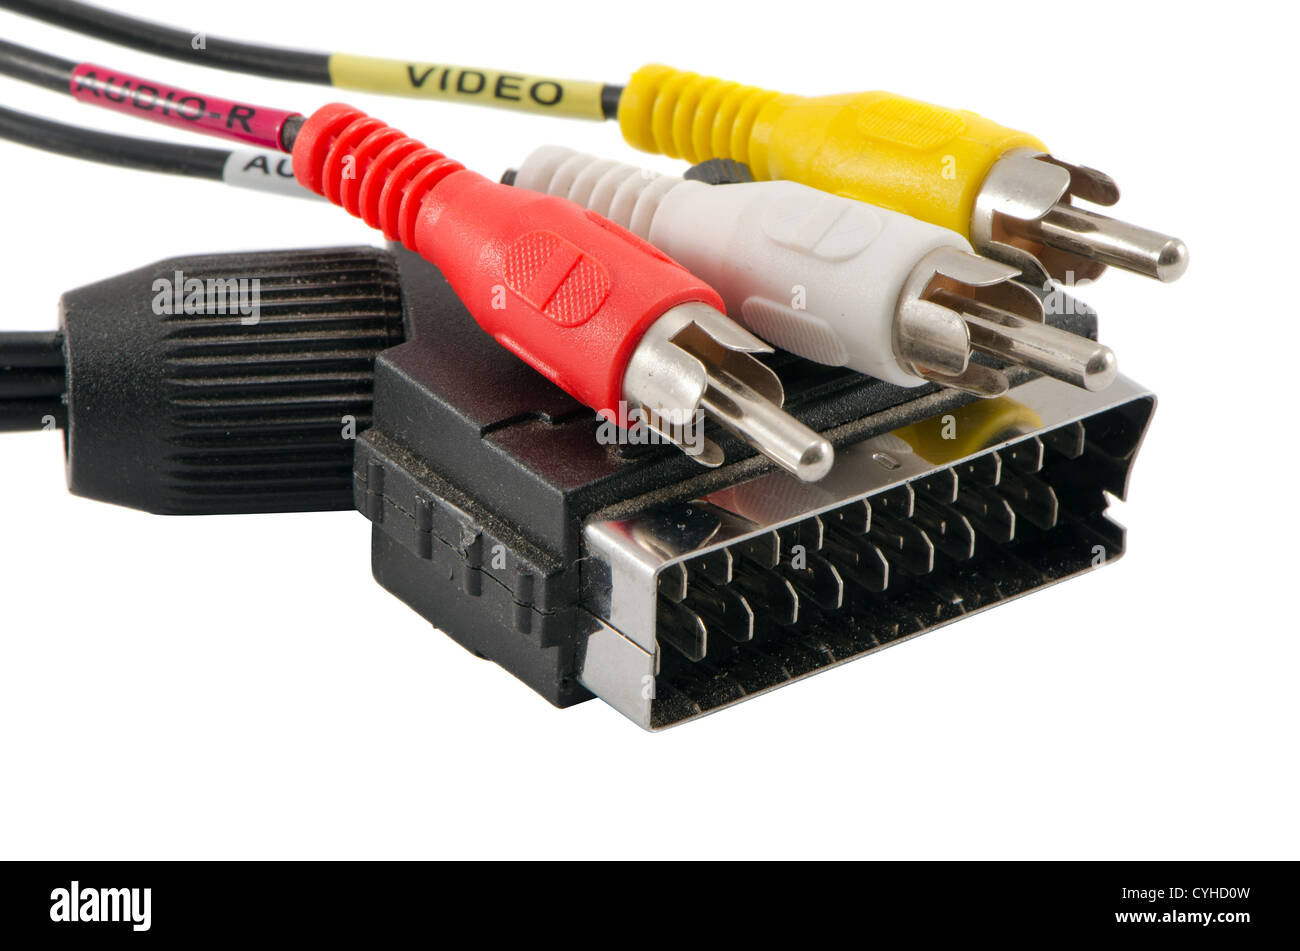 tv scart cable connector and audio video colorful tulip wires plugs rh alamy com Scart Pinout scart plug wiring diagram